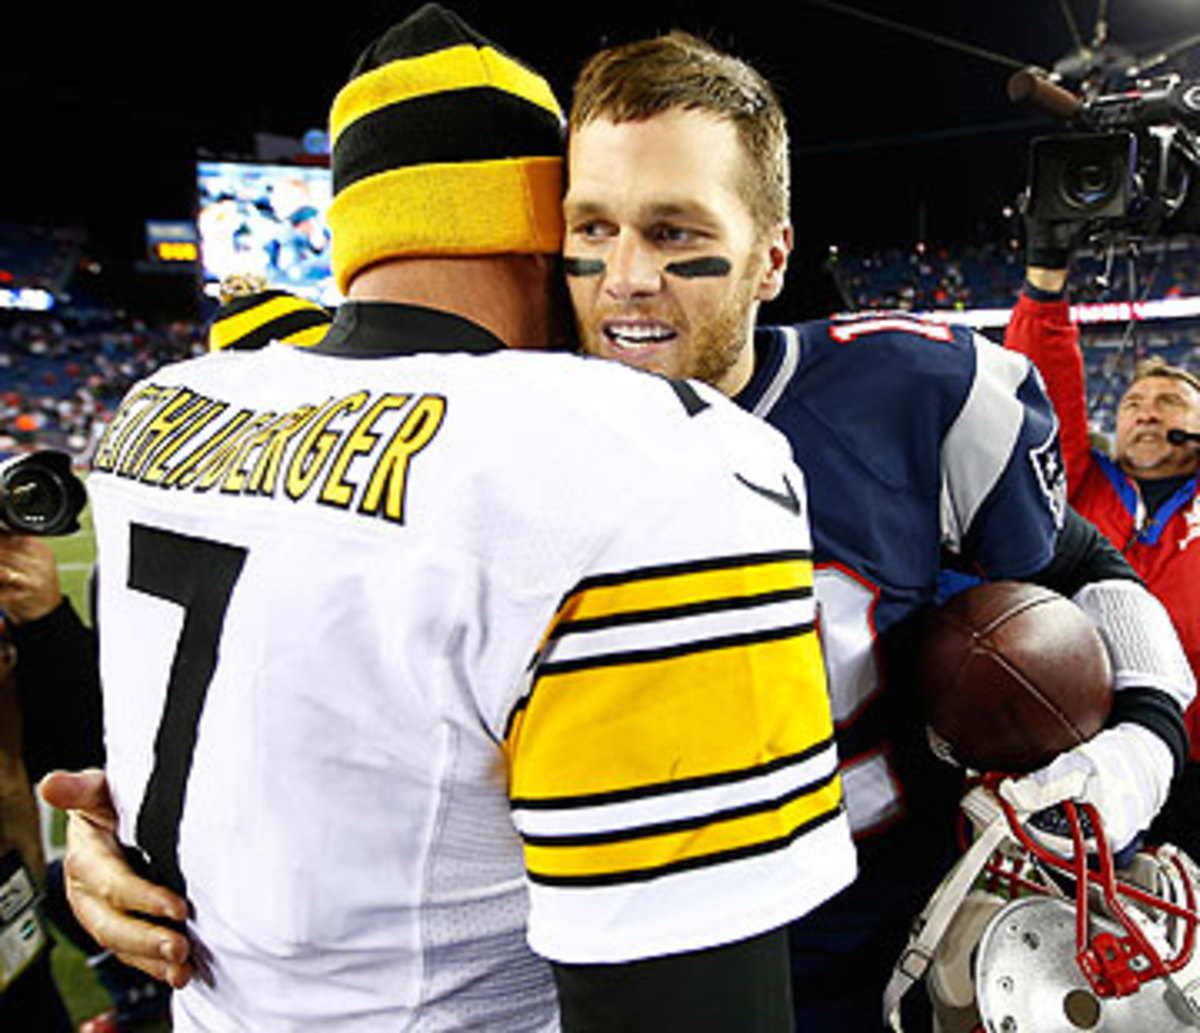 Brady's Patriots beat Roethlisberger's Steelers the last time they met in November 2013. (Jared Wickerham/Getty Images)